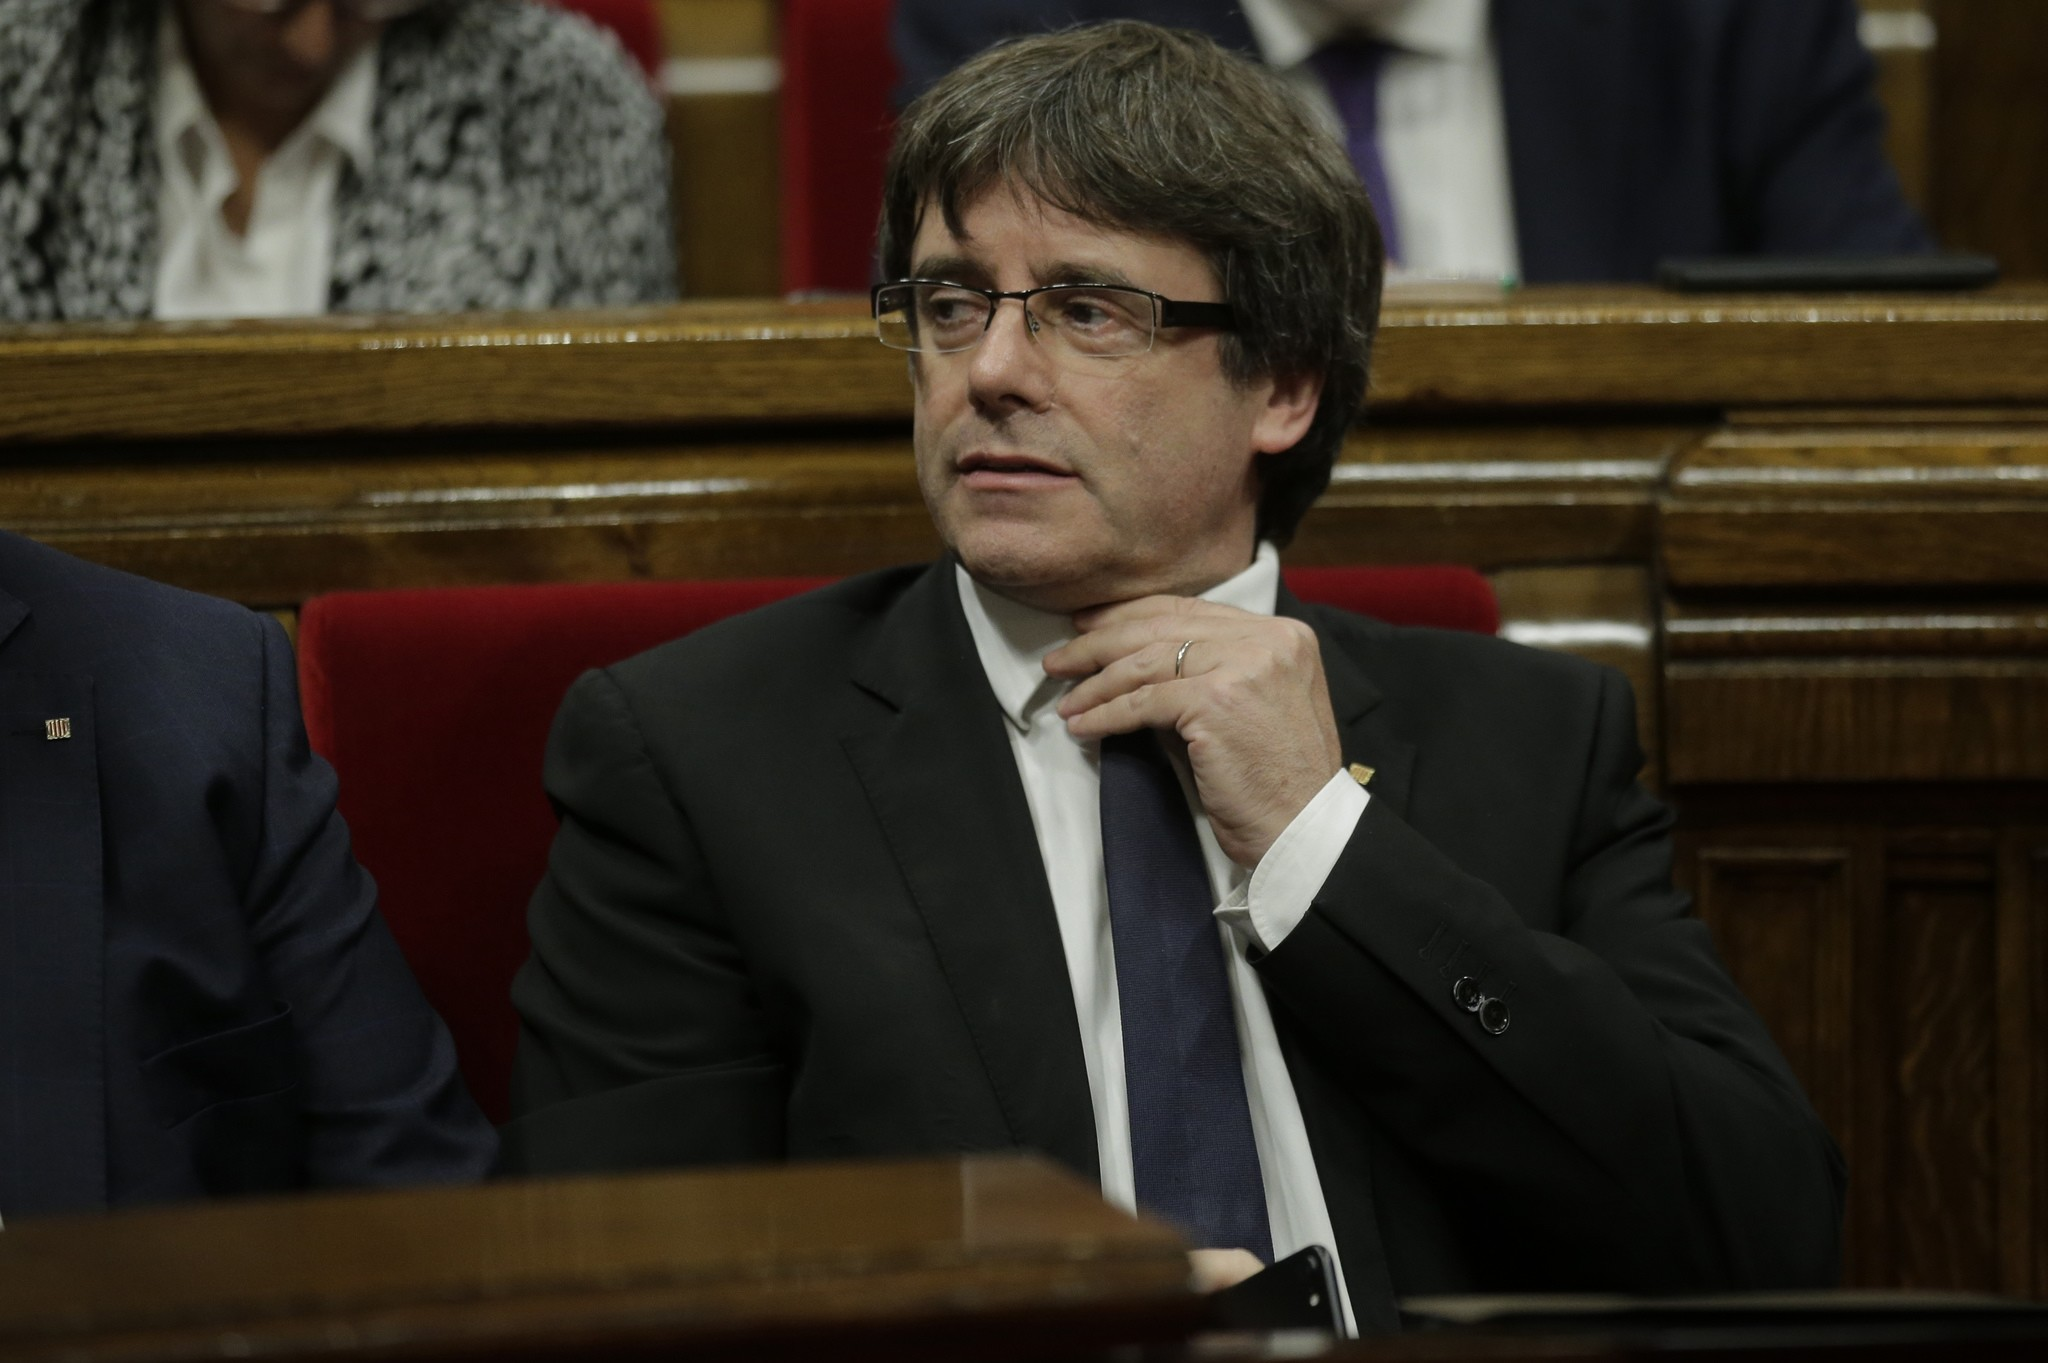 Catalan regional President Carles Puigdemont waits to make his opening speech at the parliament in Barcelona, Spain, Tuesday, Oct. 10, 2017. (AP Photo)